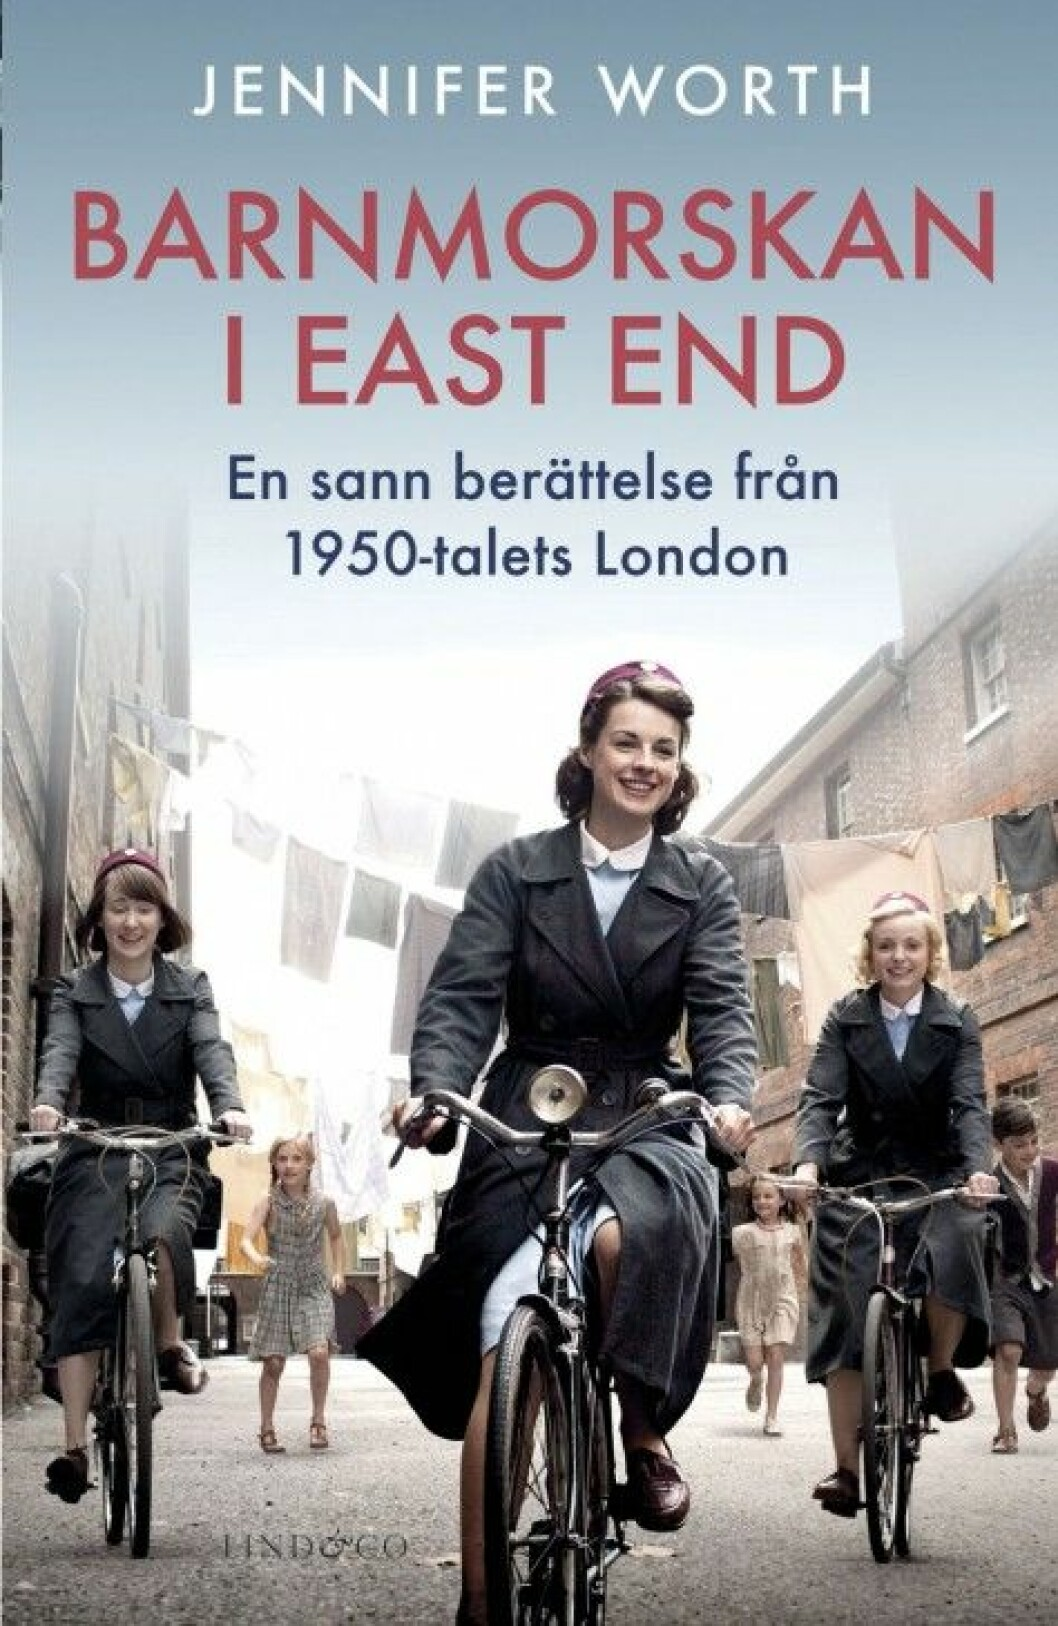 Barnmorskan i East End av Jennifer Worth (Lind & Co).